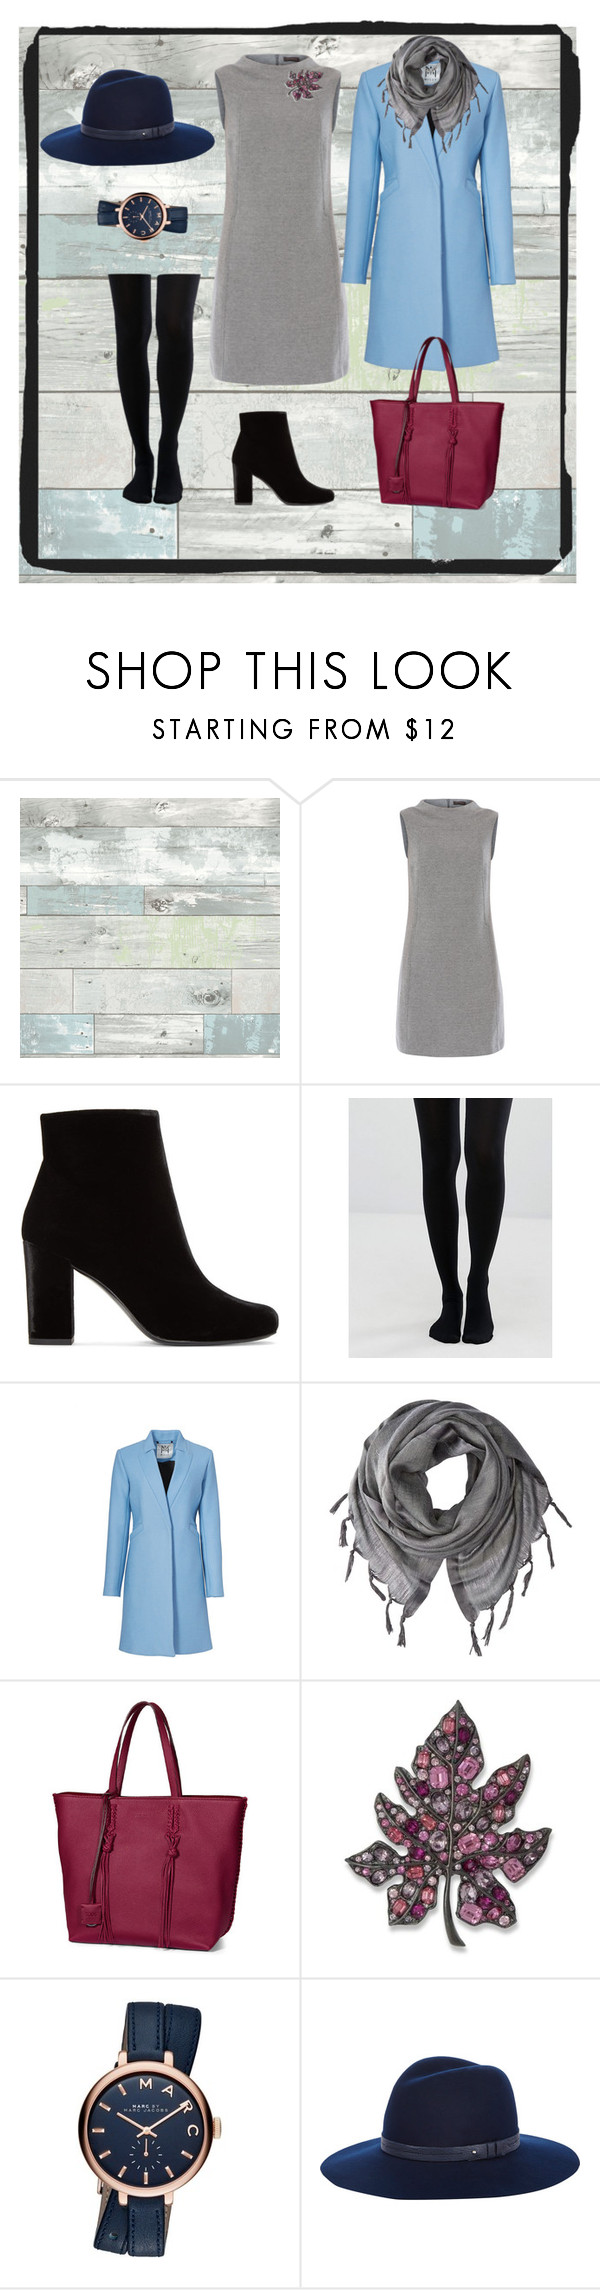 """""""Walikng the hat"""" by tatiana-touraeva on Polyvore featuring Wall Pops!, Peserico, Yves Saint Laurent, Jonathan Aston, Milly, Love Quotes Scarves, Tod's, Kenneth Jay Lane, Marc Jacobs and rag & bone"""